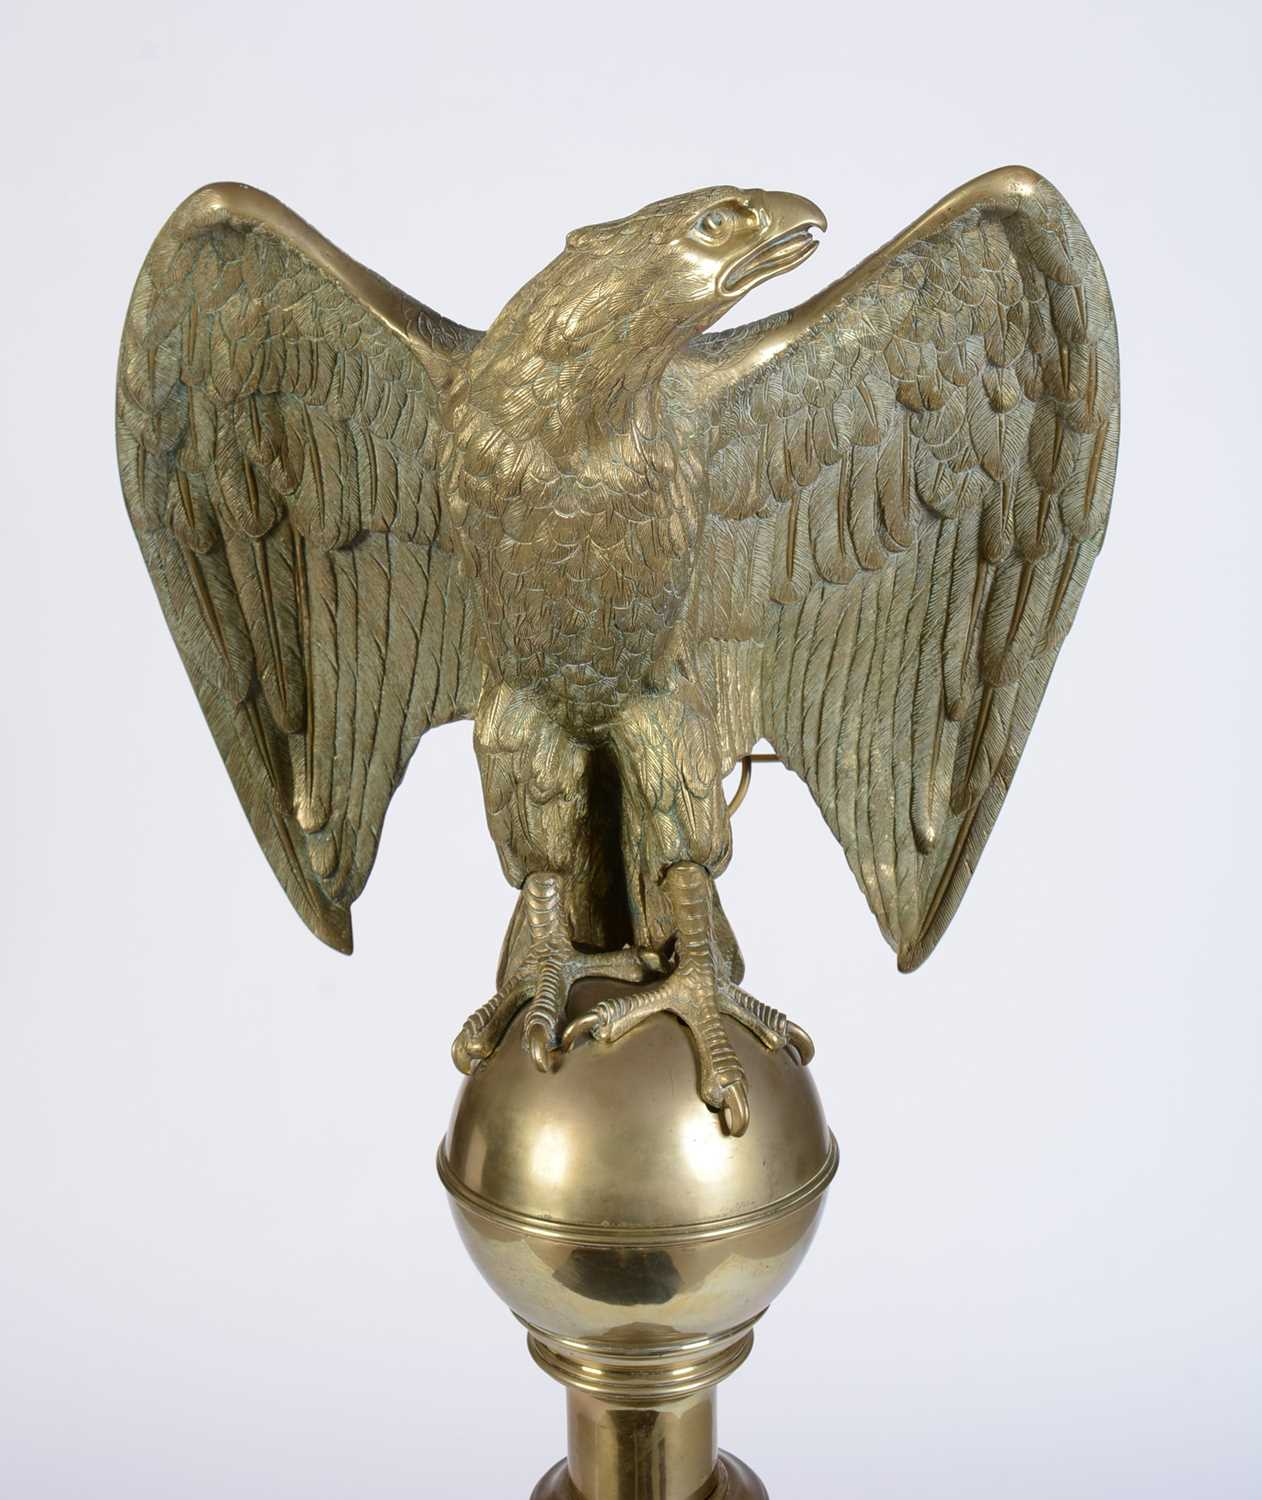 Early 20th Century cast brass lectern - Image 2 of 12